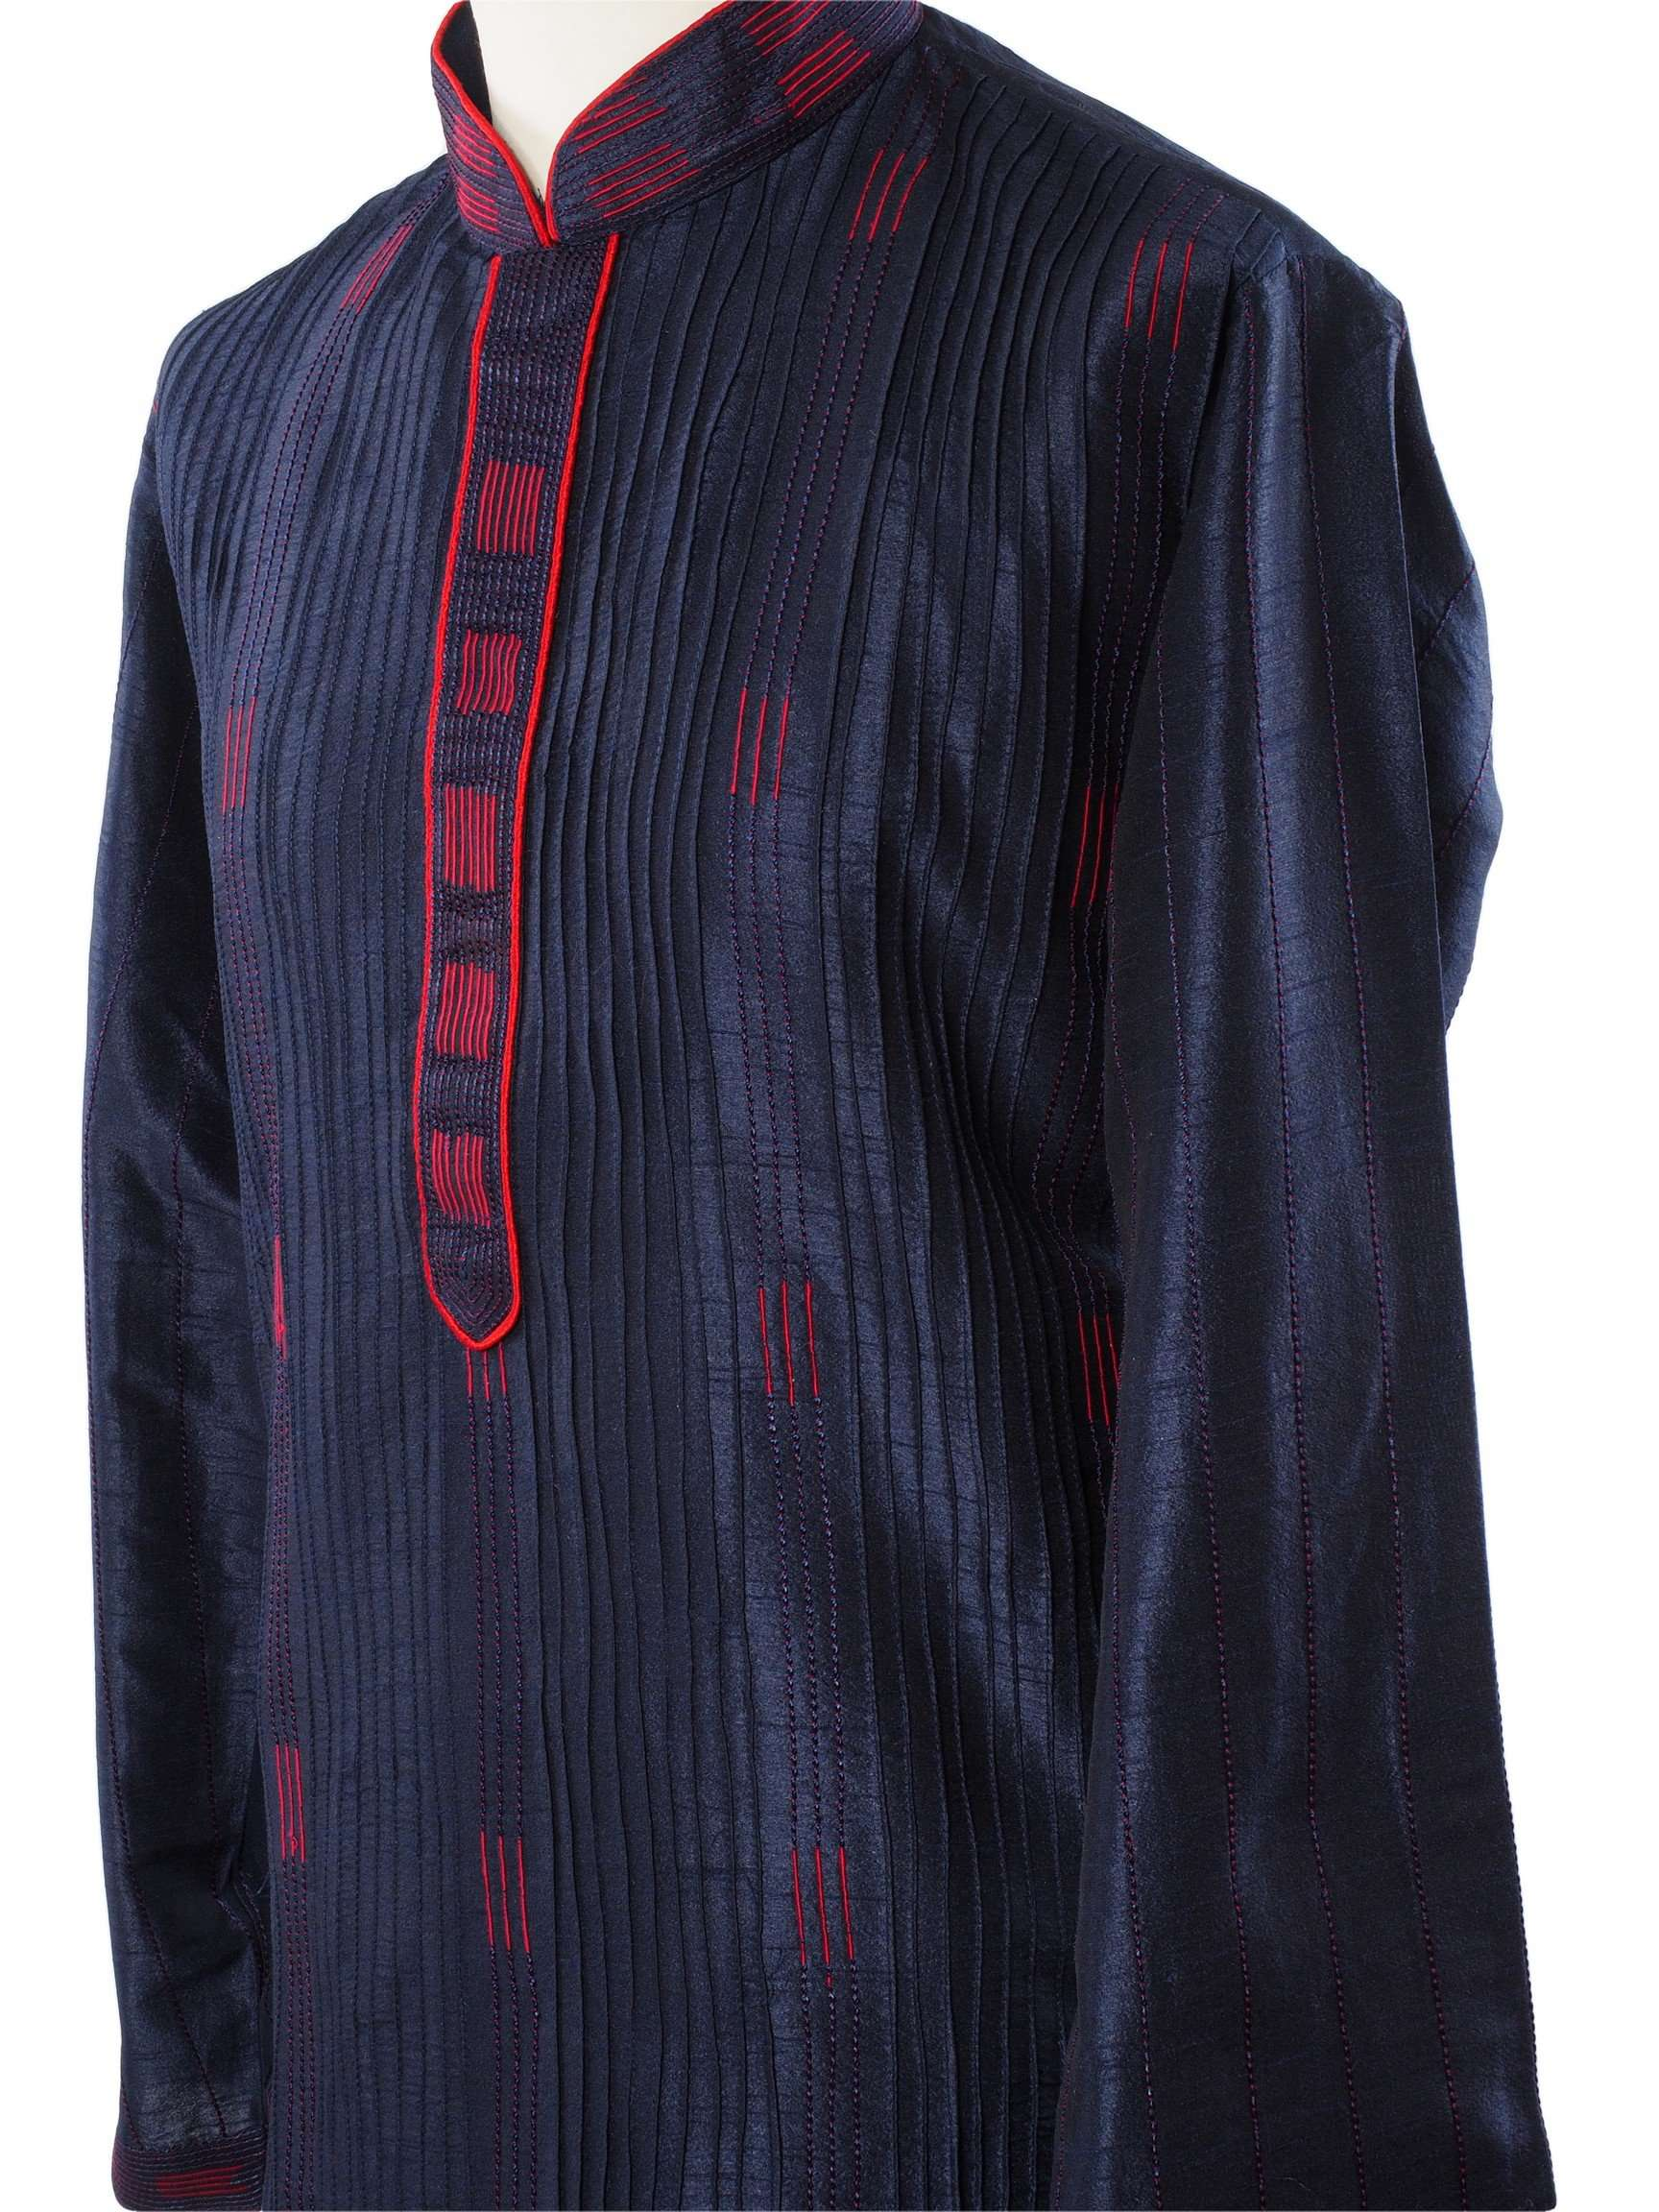 Mens Kurta set in Navy - Bollywood, Weddings, Fancy Dress - SNC588VT-NAV